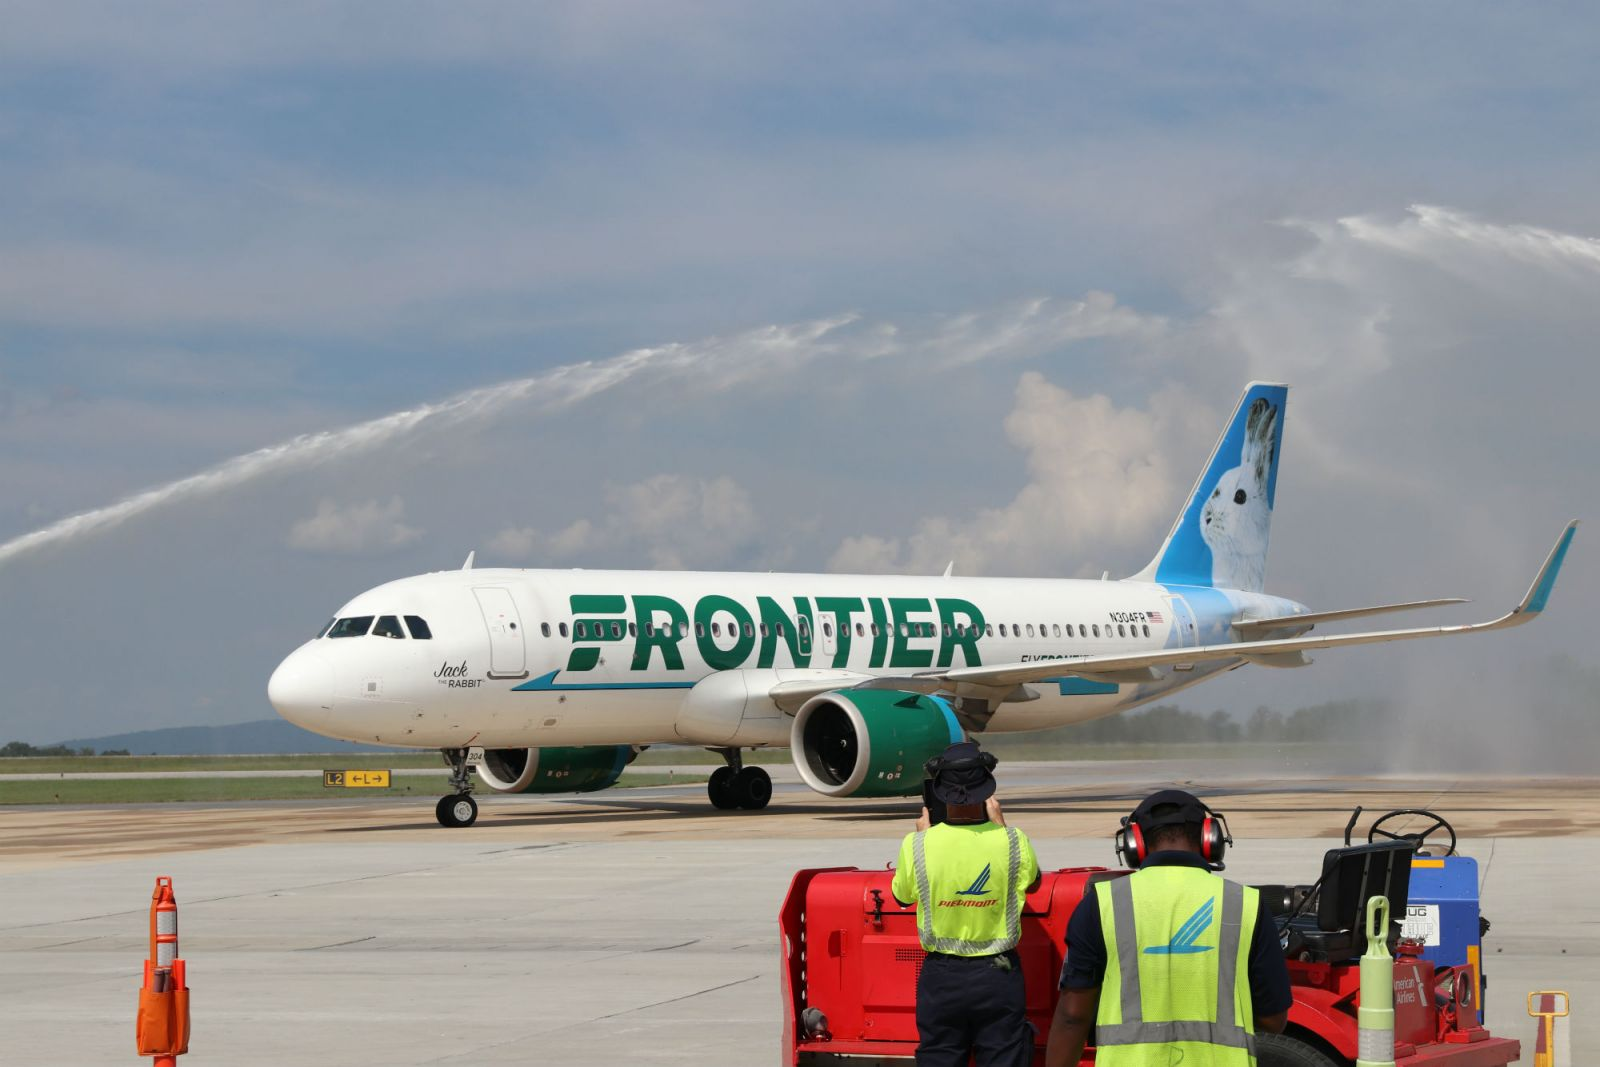 Frontier Airlines was greeted with a salute from the GSPs water cannons. (Photo/Provided)